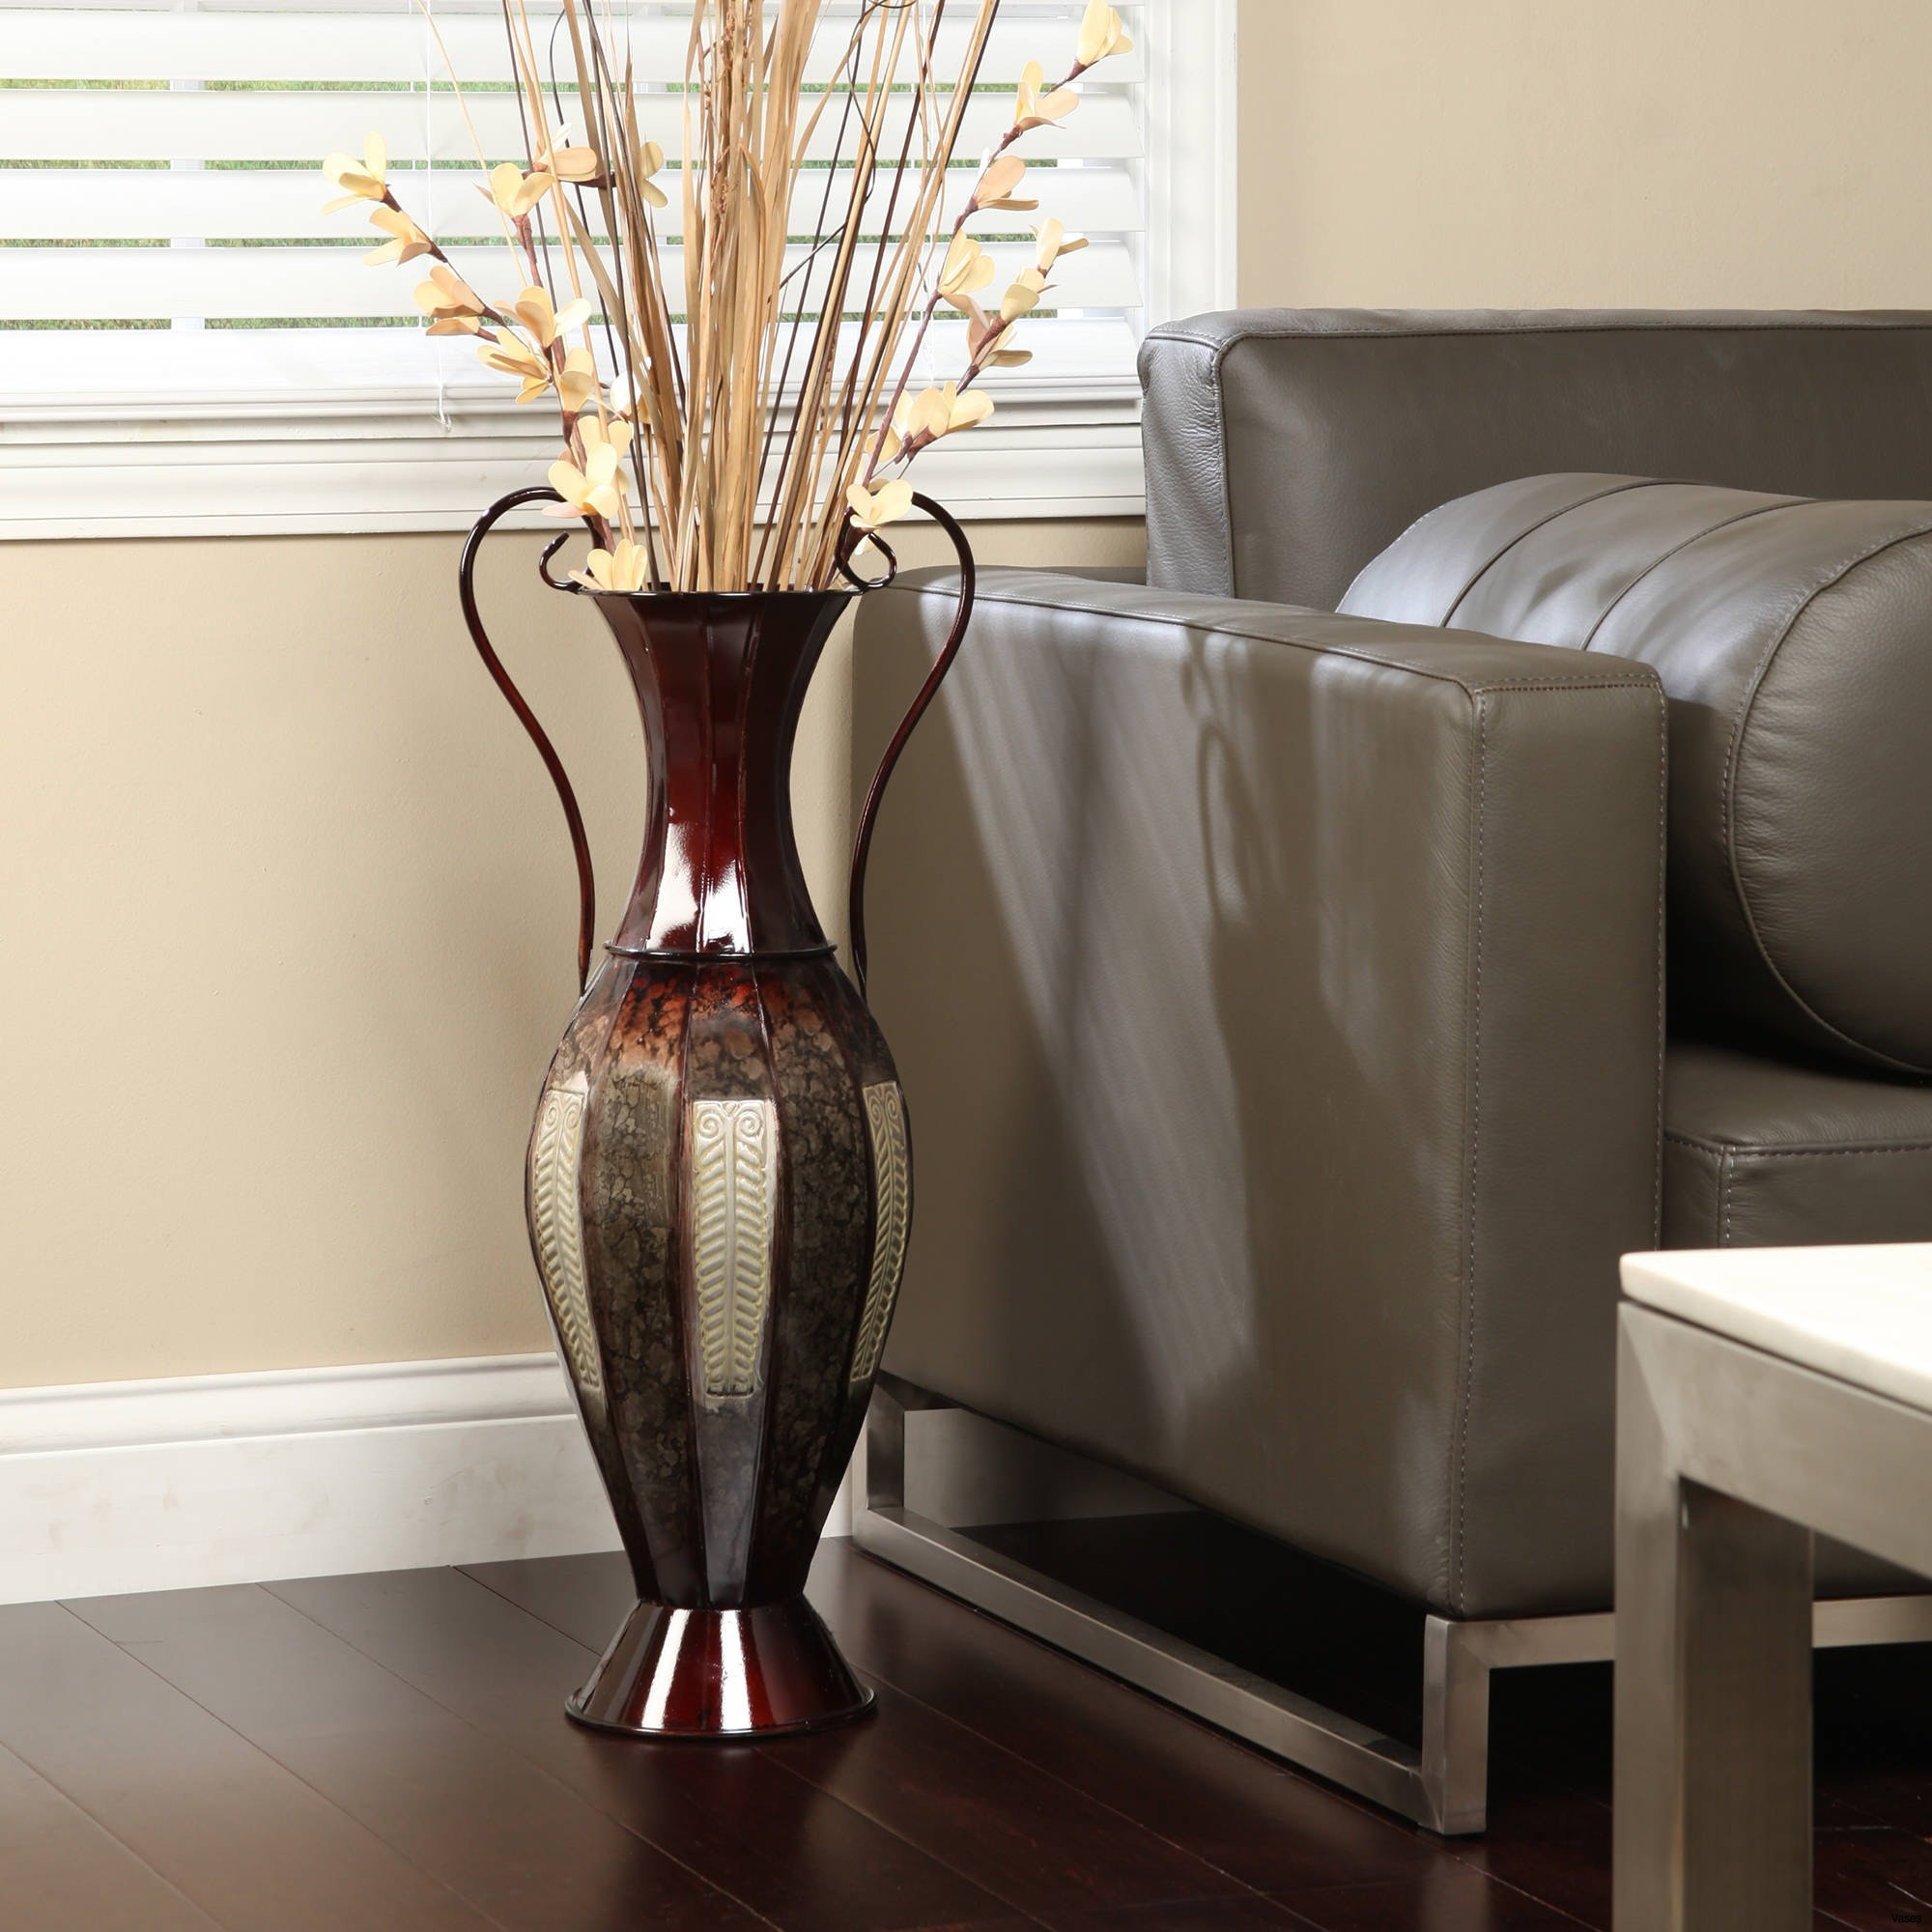 26 Perfect Large Floor Vases Uk 2021 free download large floor vases uk of pics of large vases for the floor vases artificial plants collection in floor plans new 9 beautiful floor vases qosy for tall vaseh